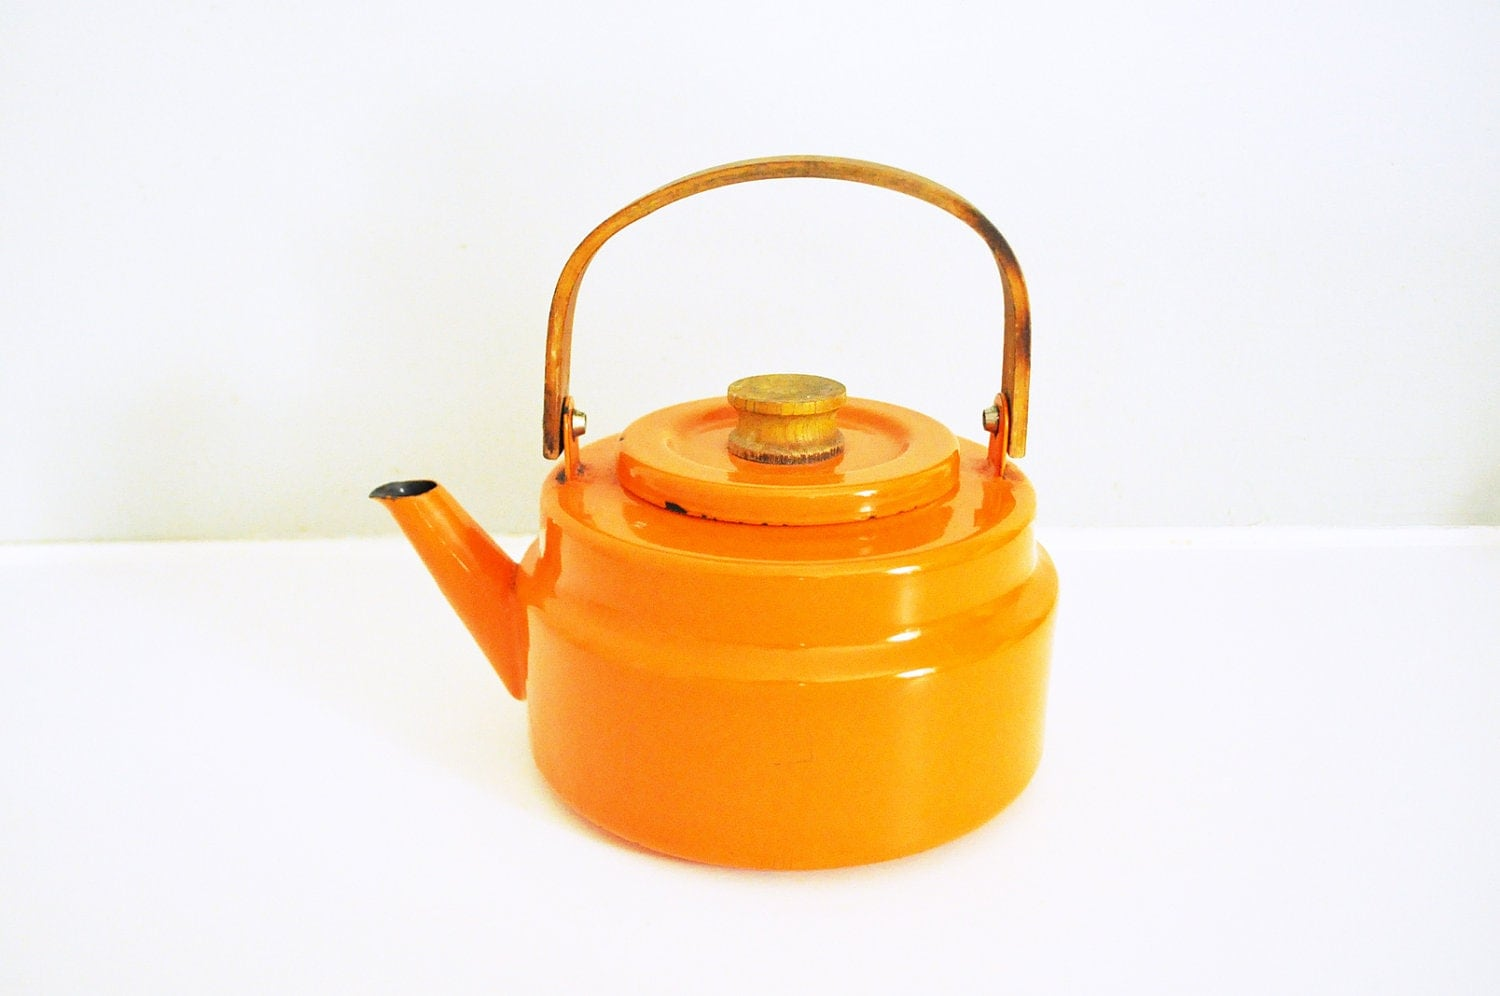 Vintage Bright Orange Enamel Teapot - LittleBlueHouseMod